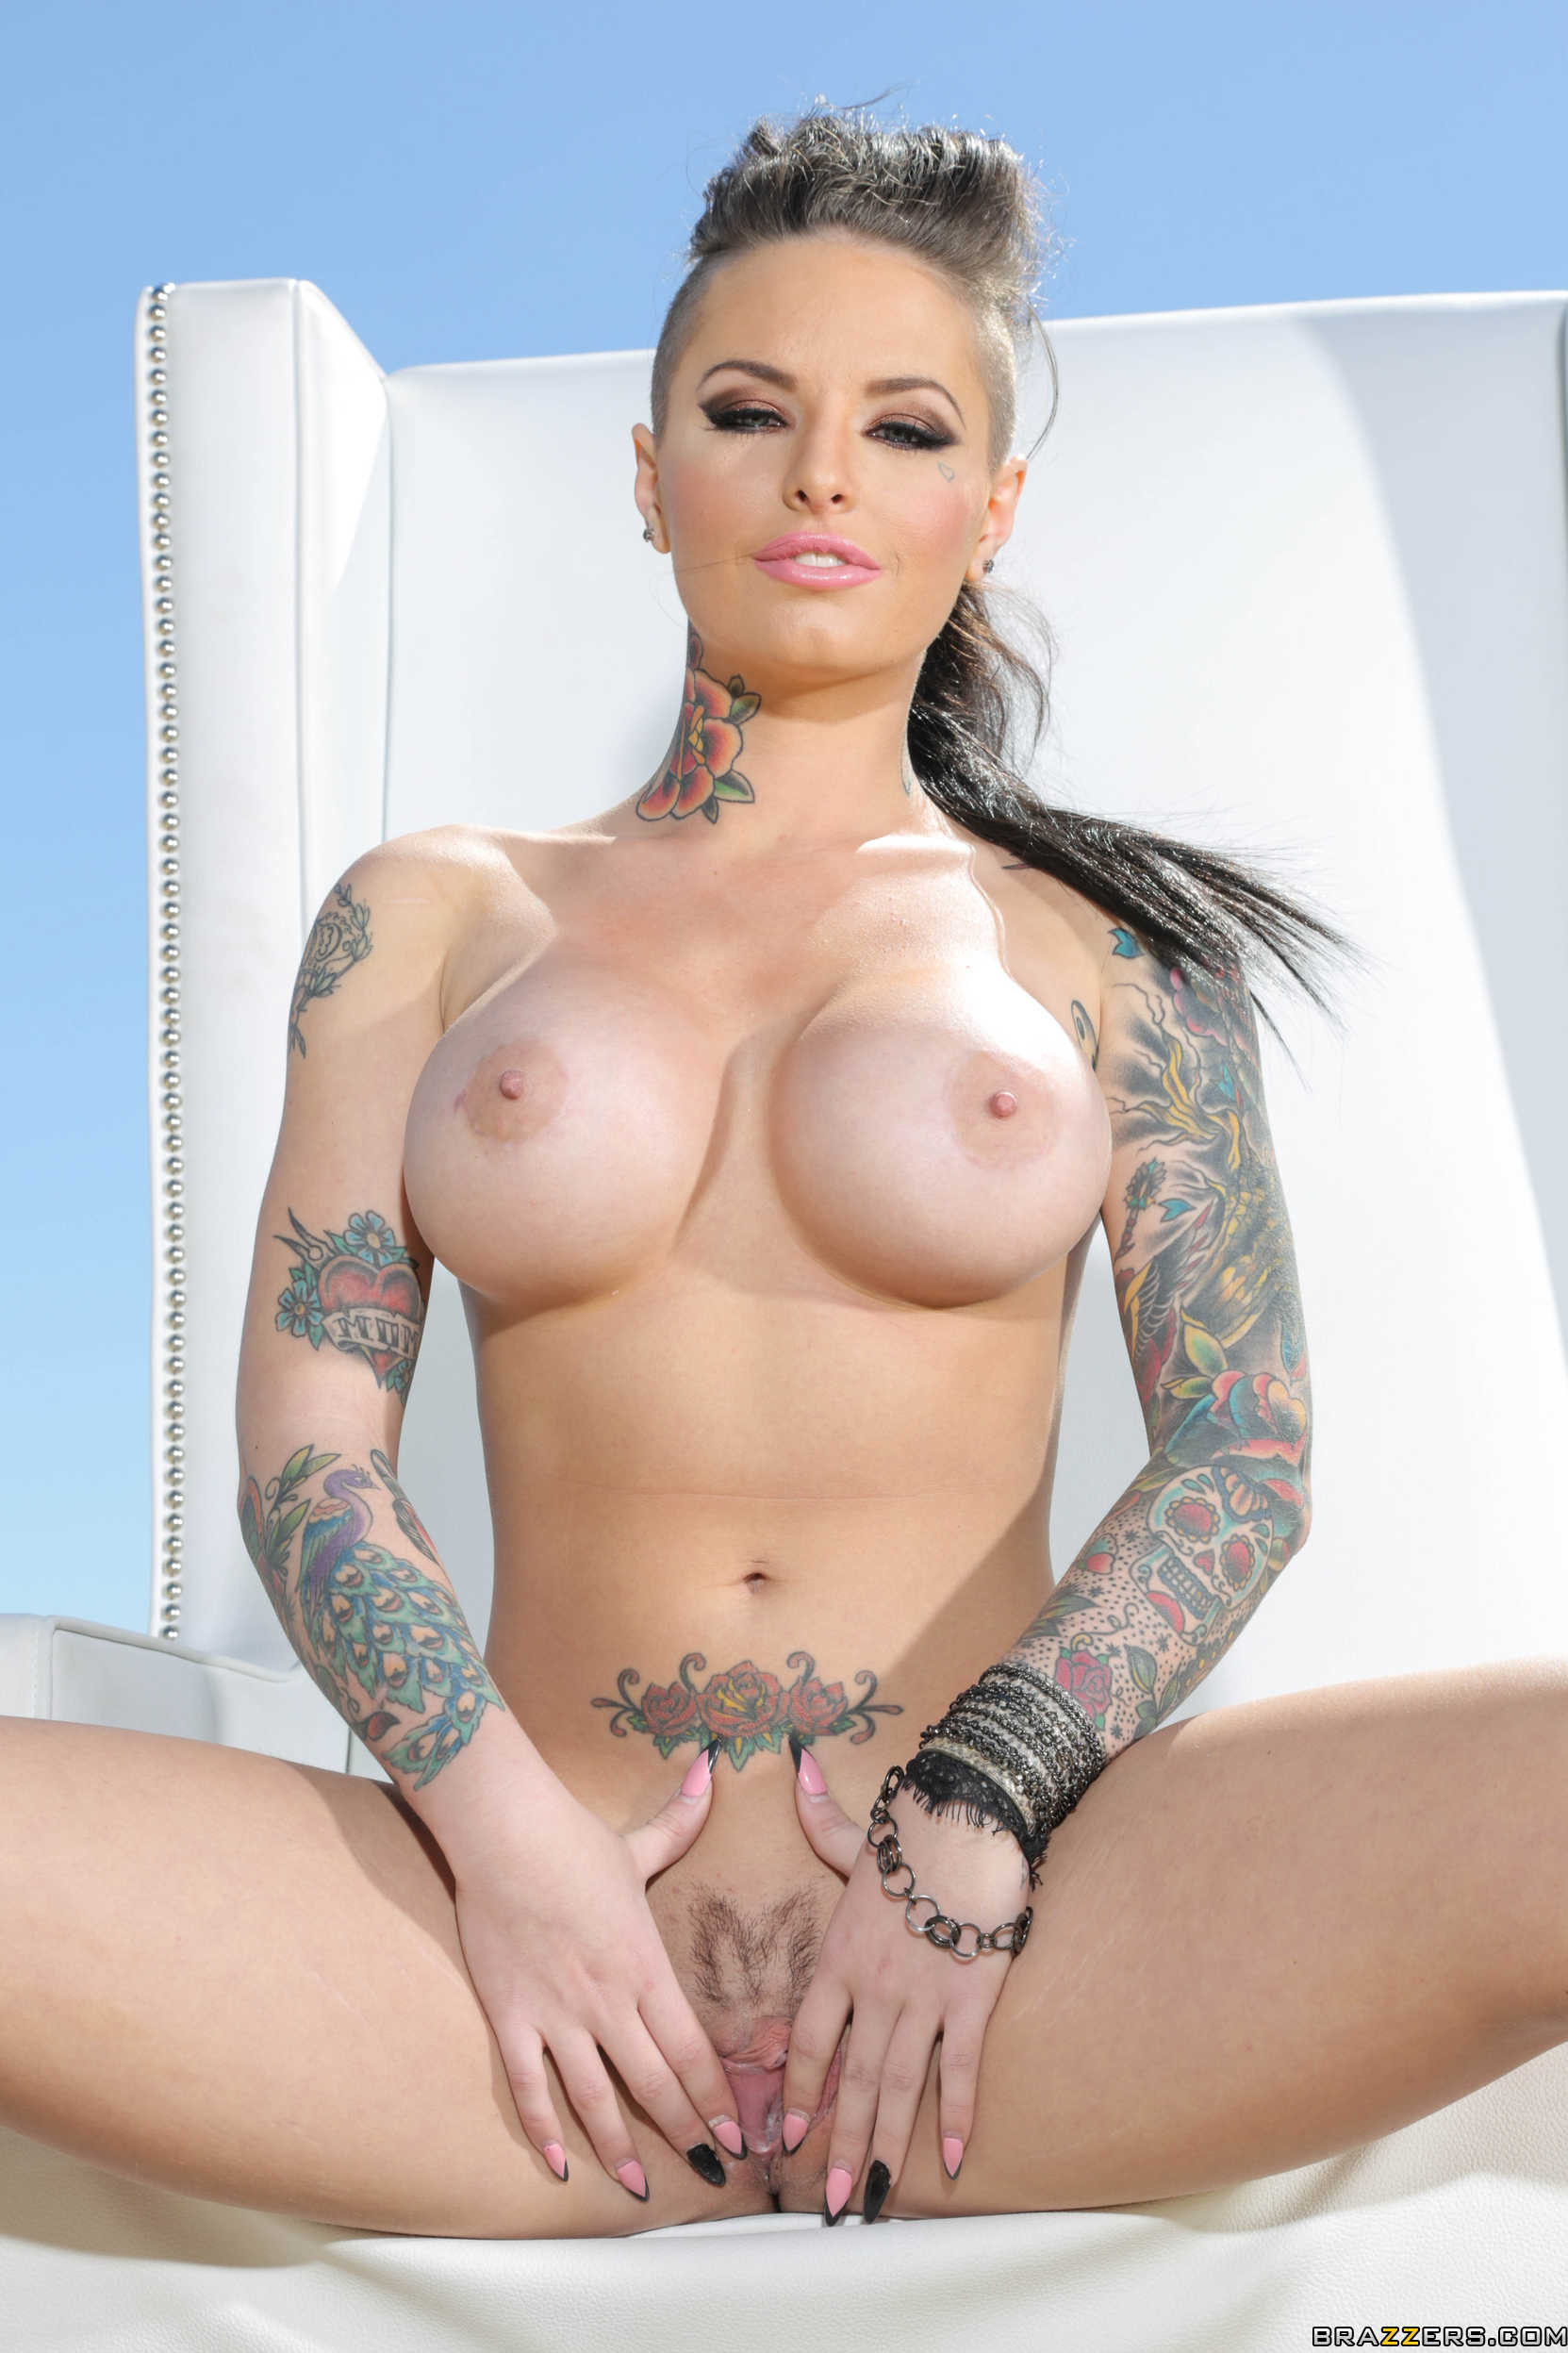 Christy mack nude pictures